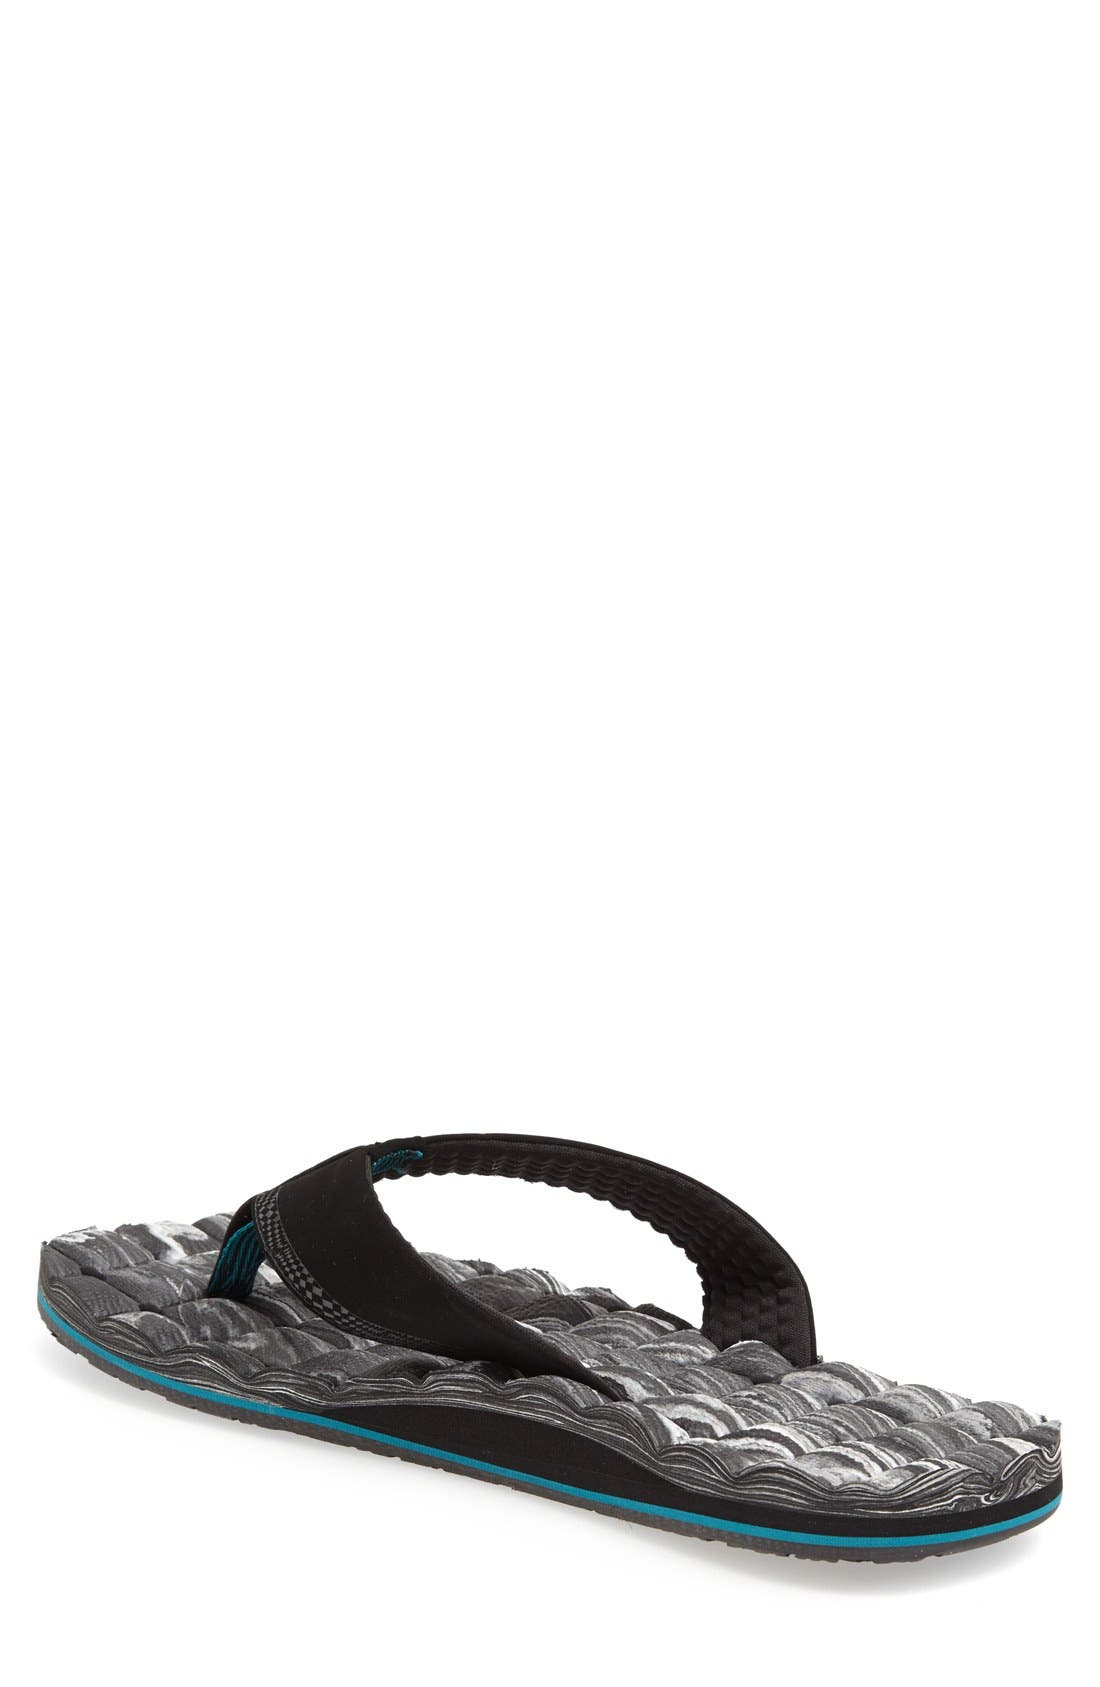 Alternate Image 2  - Volcom 'Recliner' Flip Flop (Men)